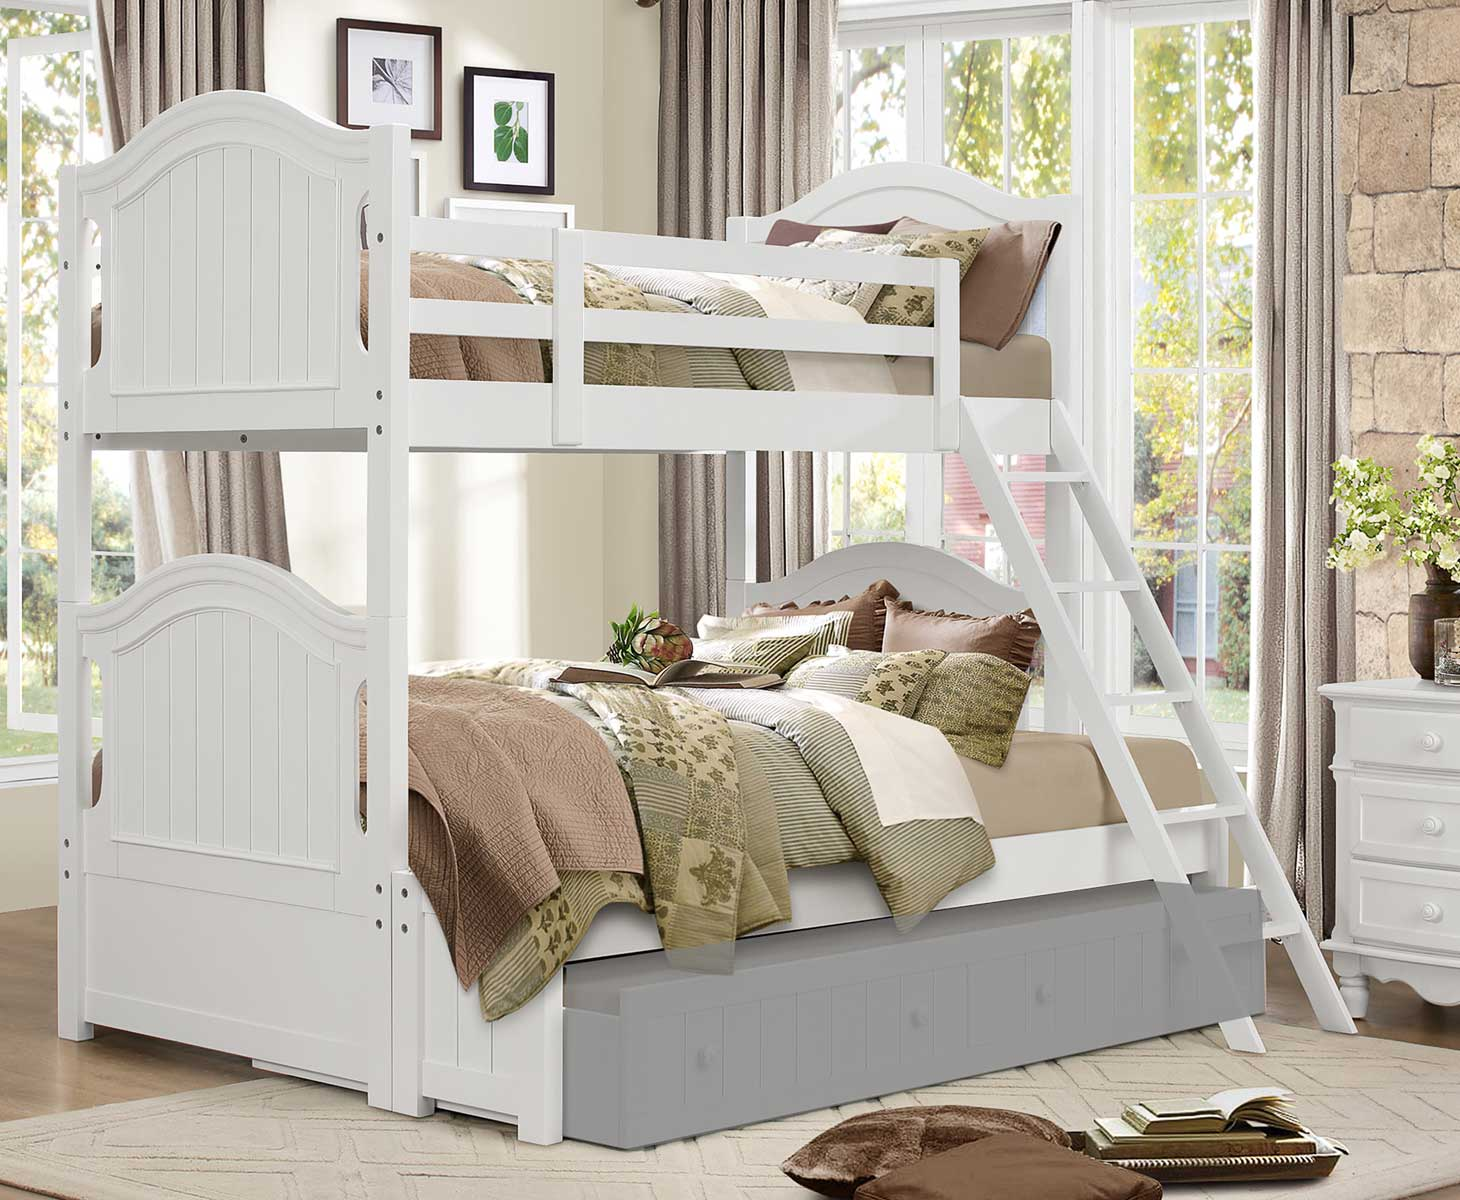 Homelegance Clementine Twin/Full Bunk Bed - White